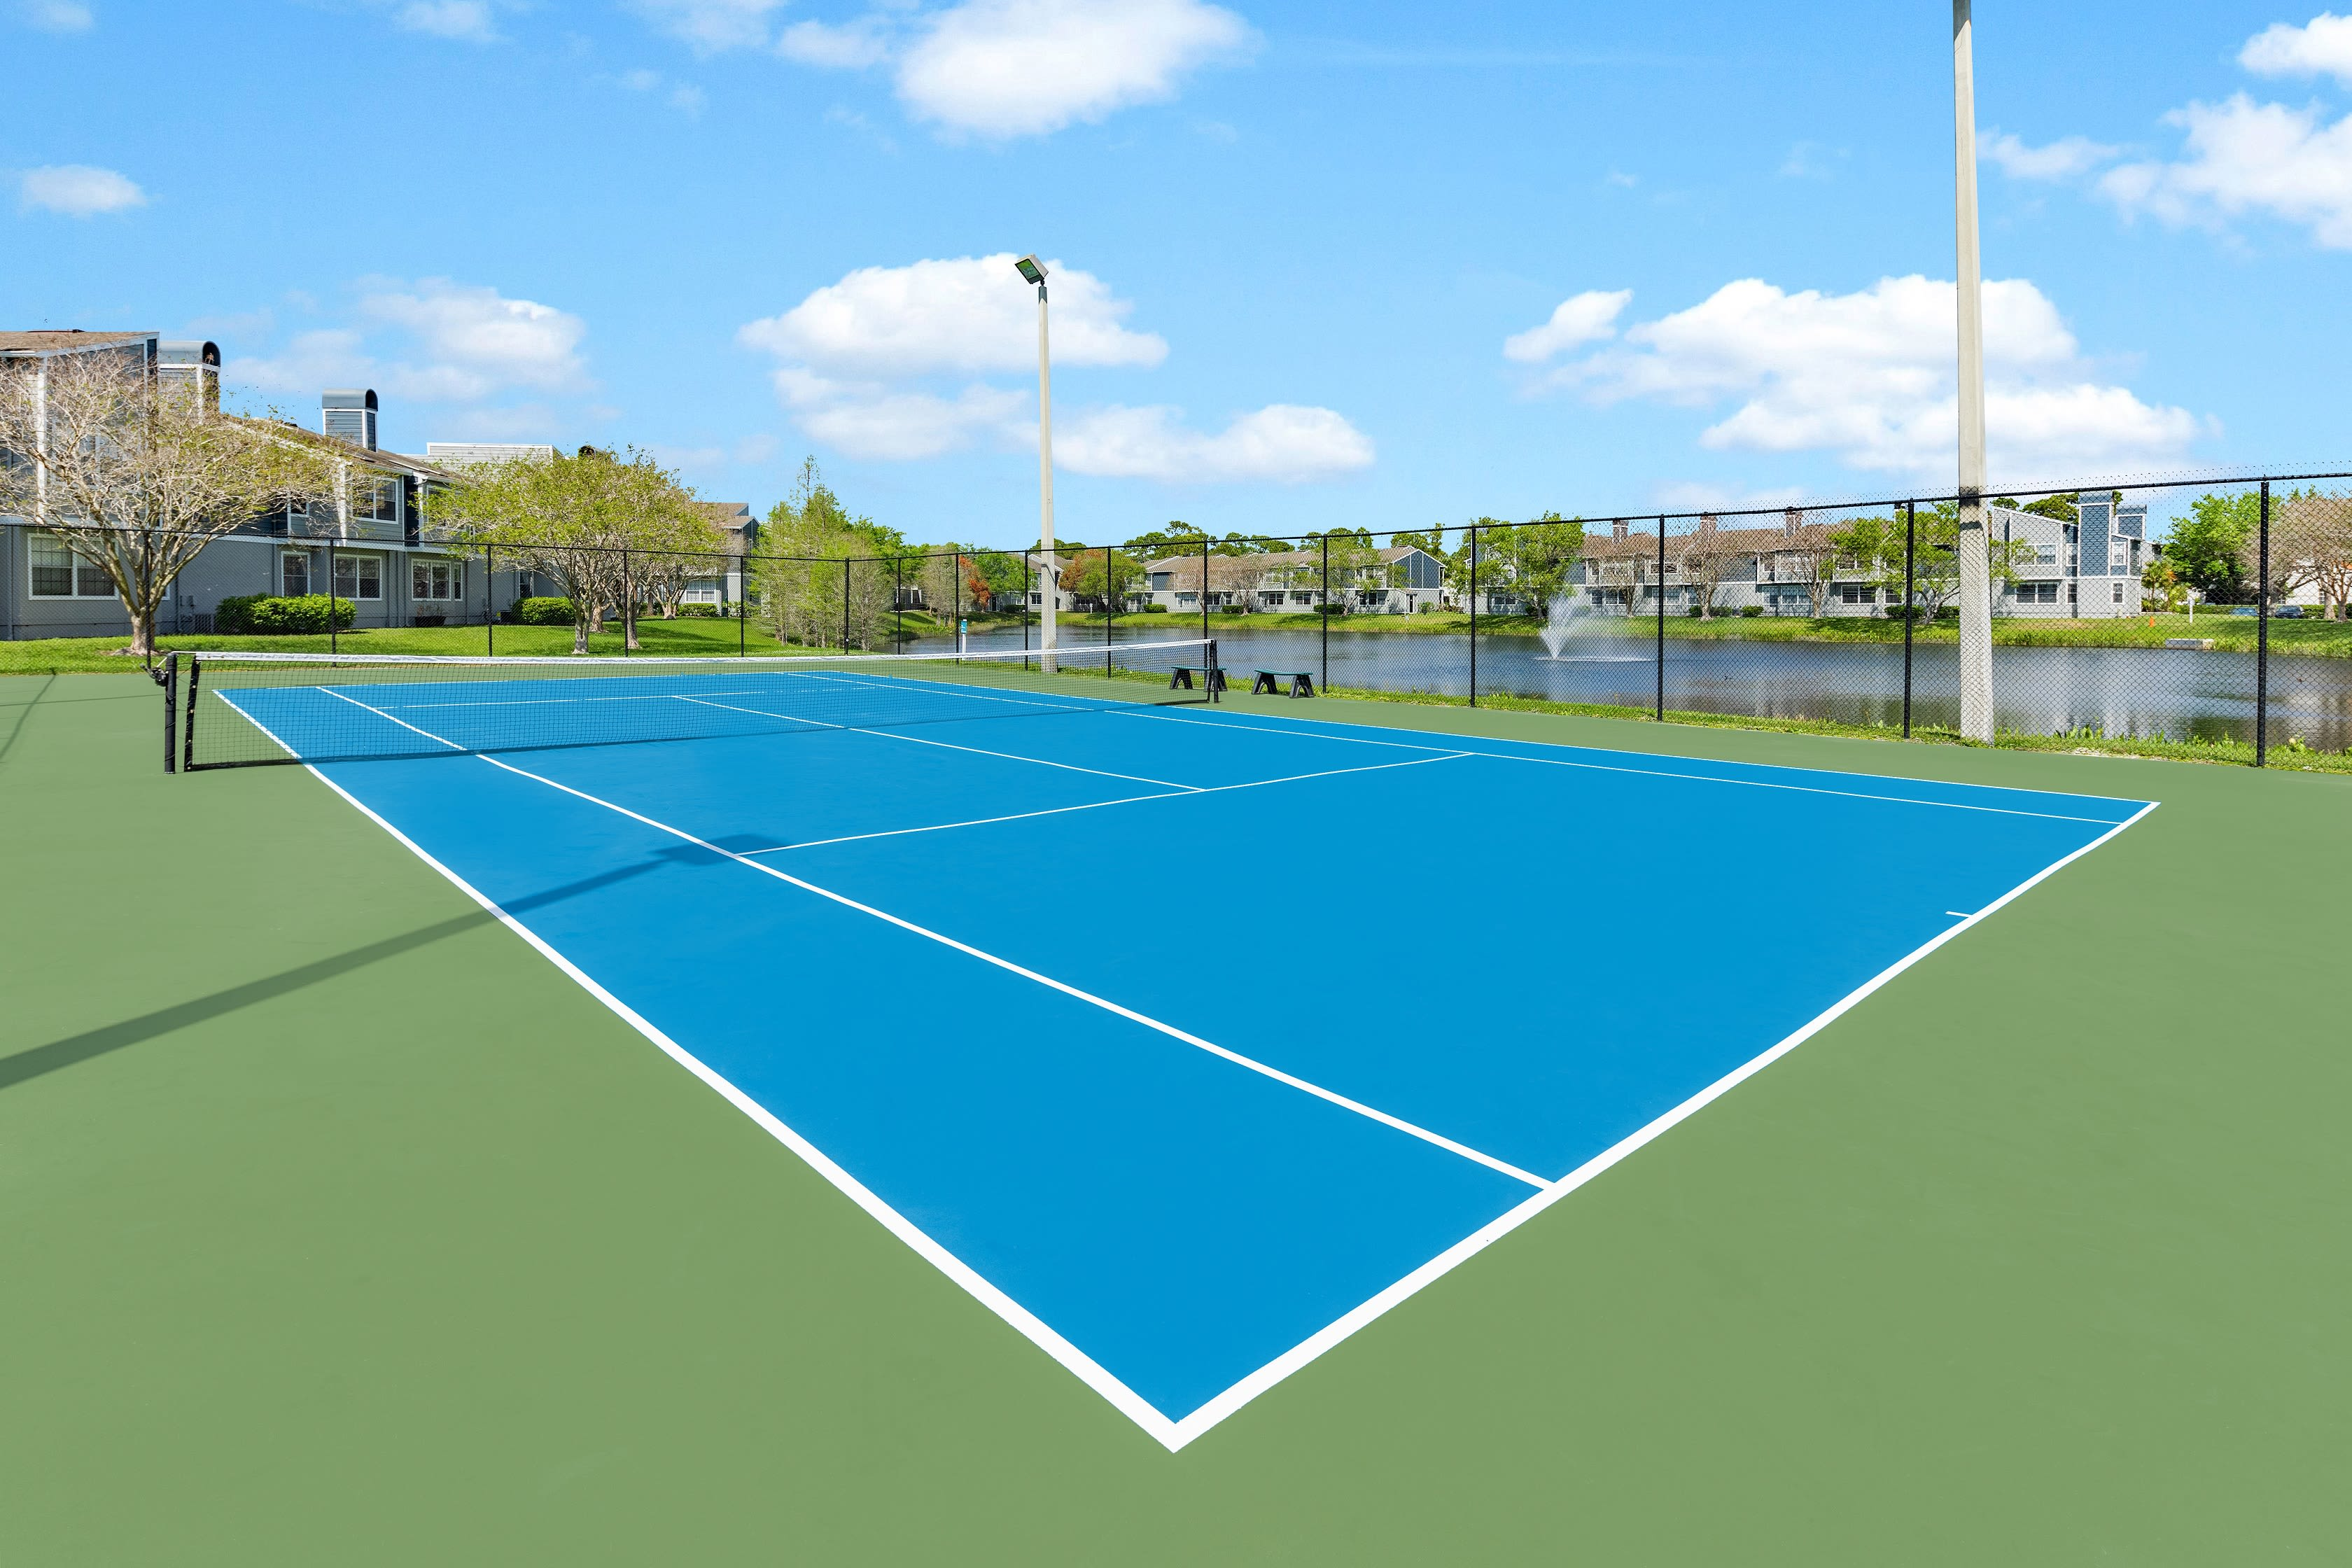 A tennis court at Fairways at Feather Sound in Clearwater, FL